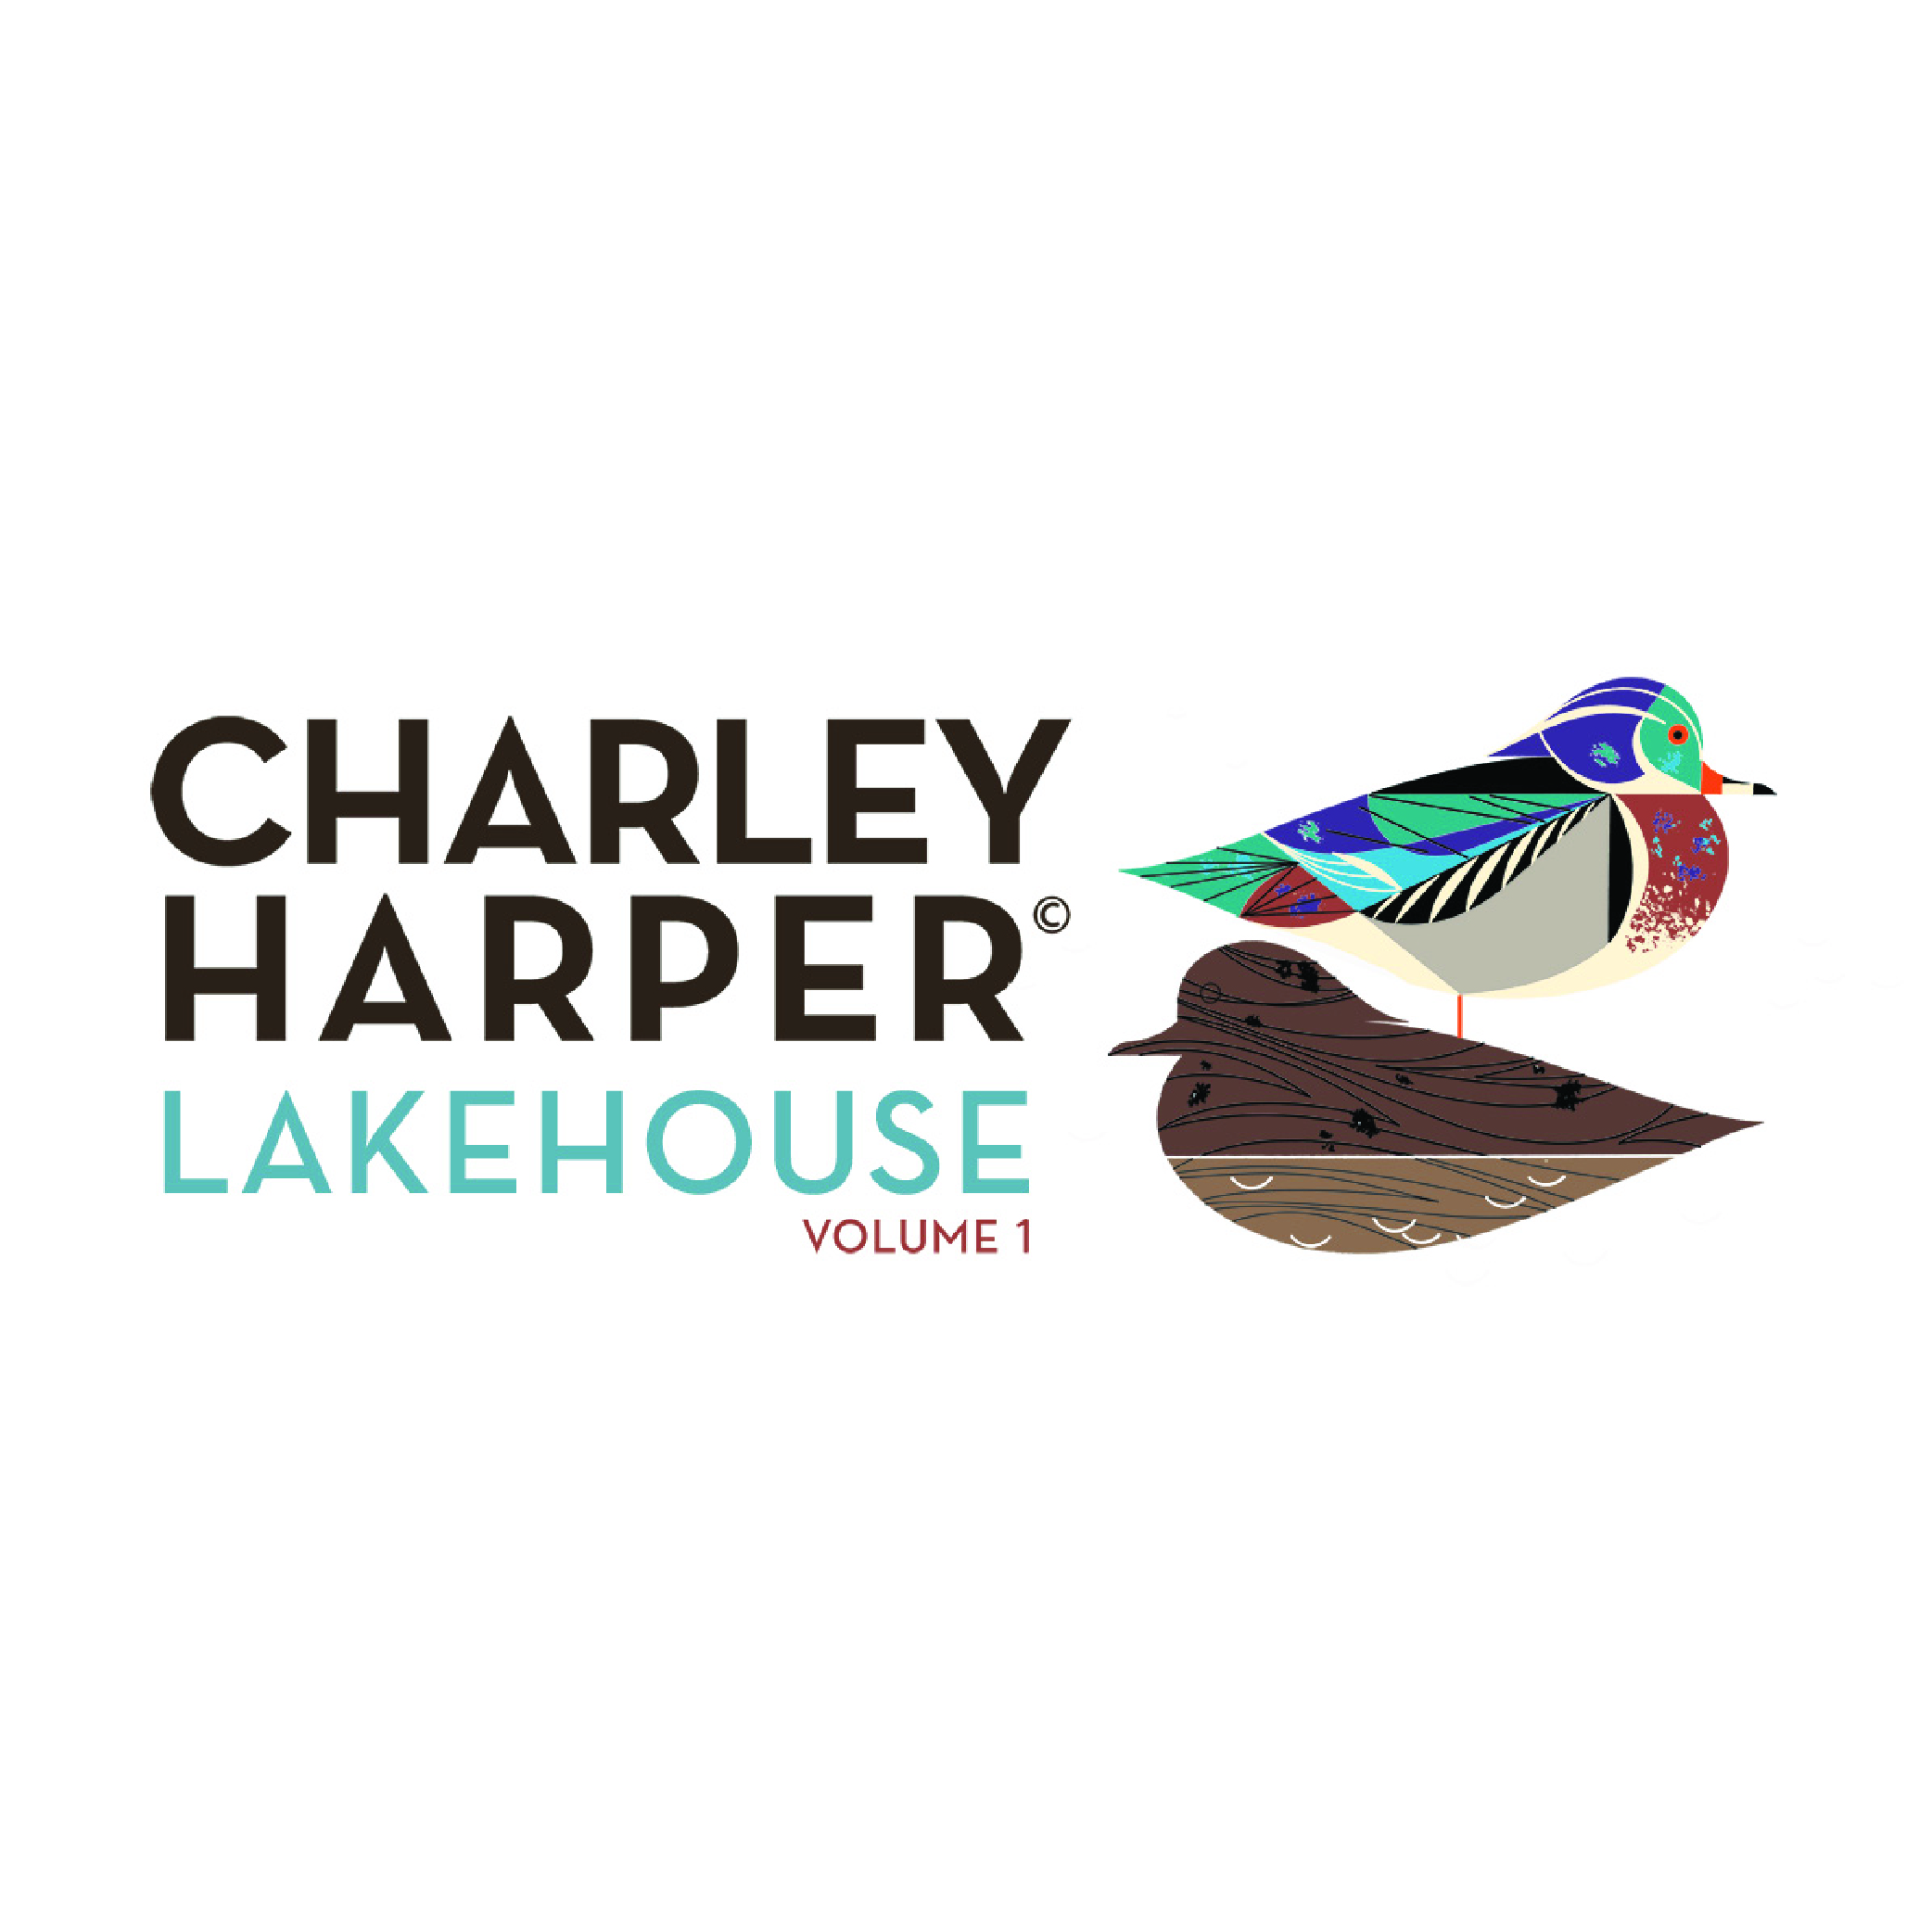 Charley Harper Lakehouse Vol. 1 Case Pack, 15 Yard Bolts